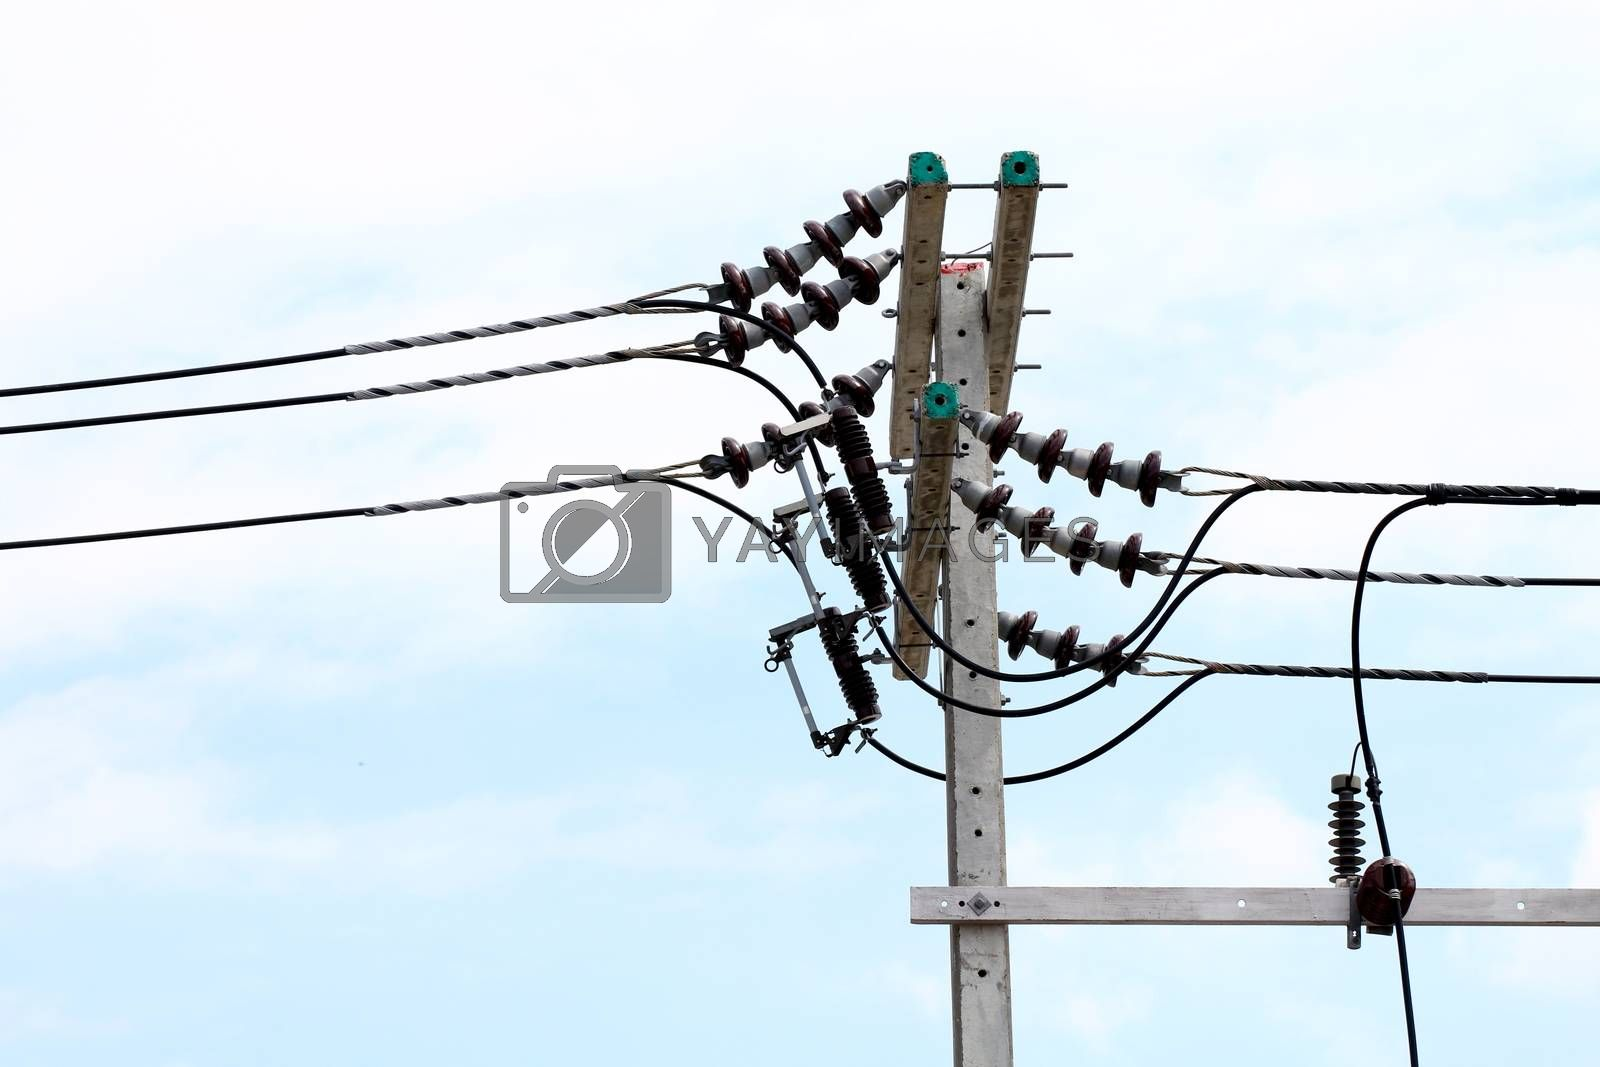 Royalty free image of Electric pole power Tangle wire danger, wire electrical energy at street road on sky background by cgdeaw